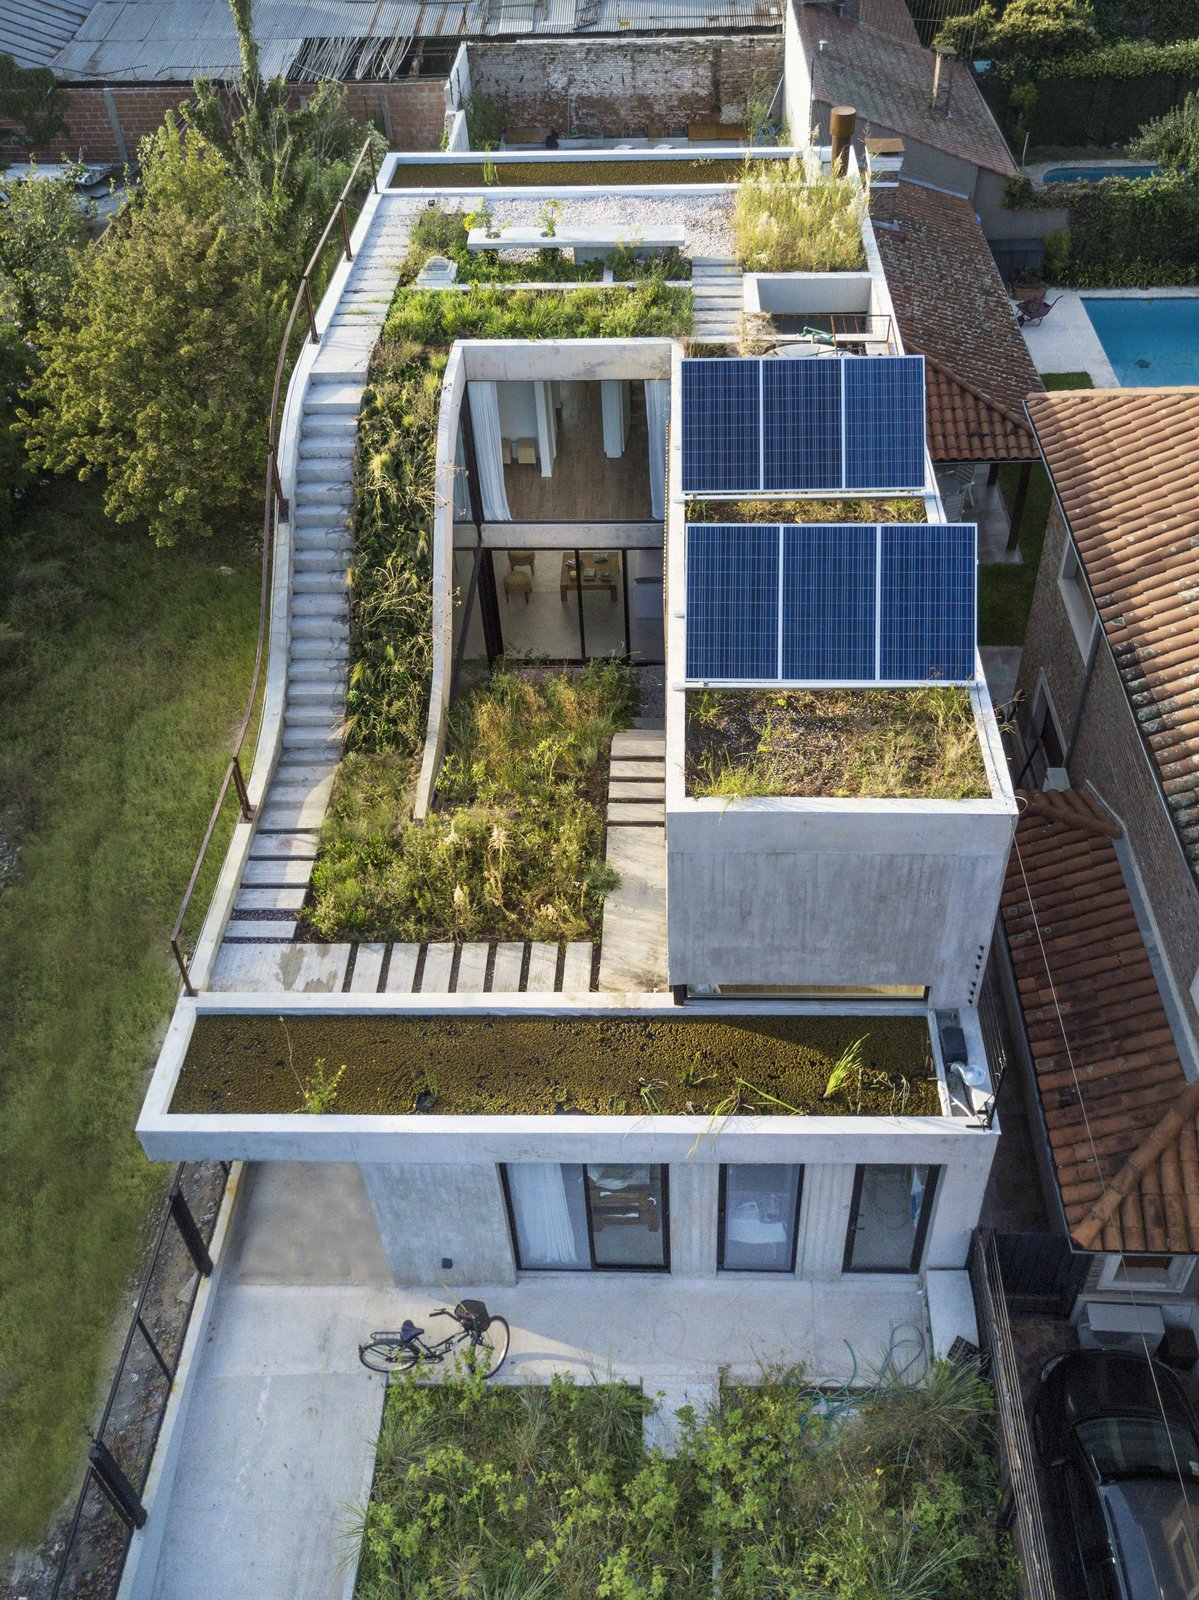 A Gardener's Home in Argentina Boasts Flowing Green Spaces